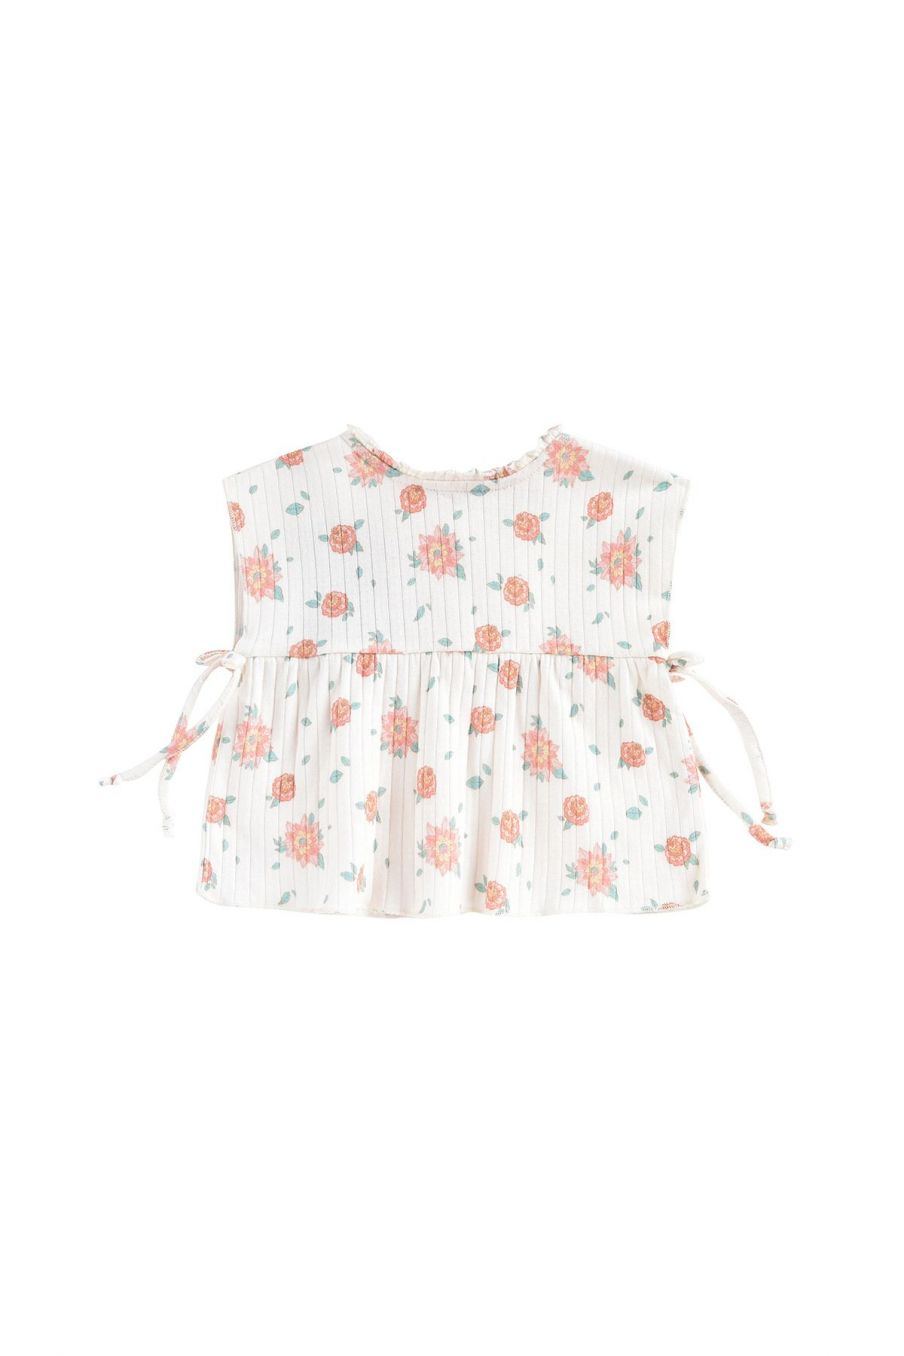 boheme chic vintage top bébé fille angika off-white flowers